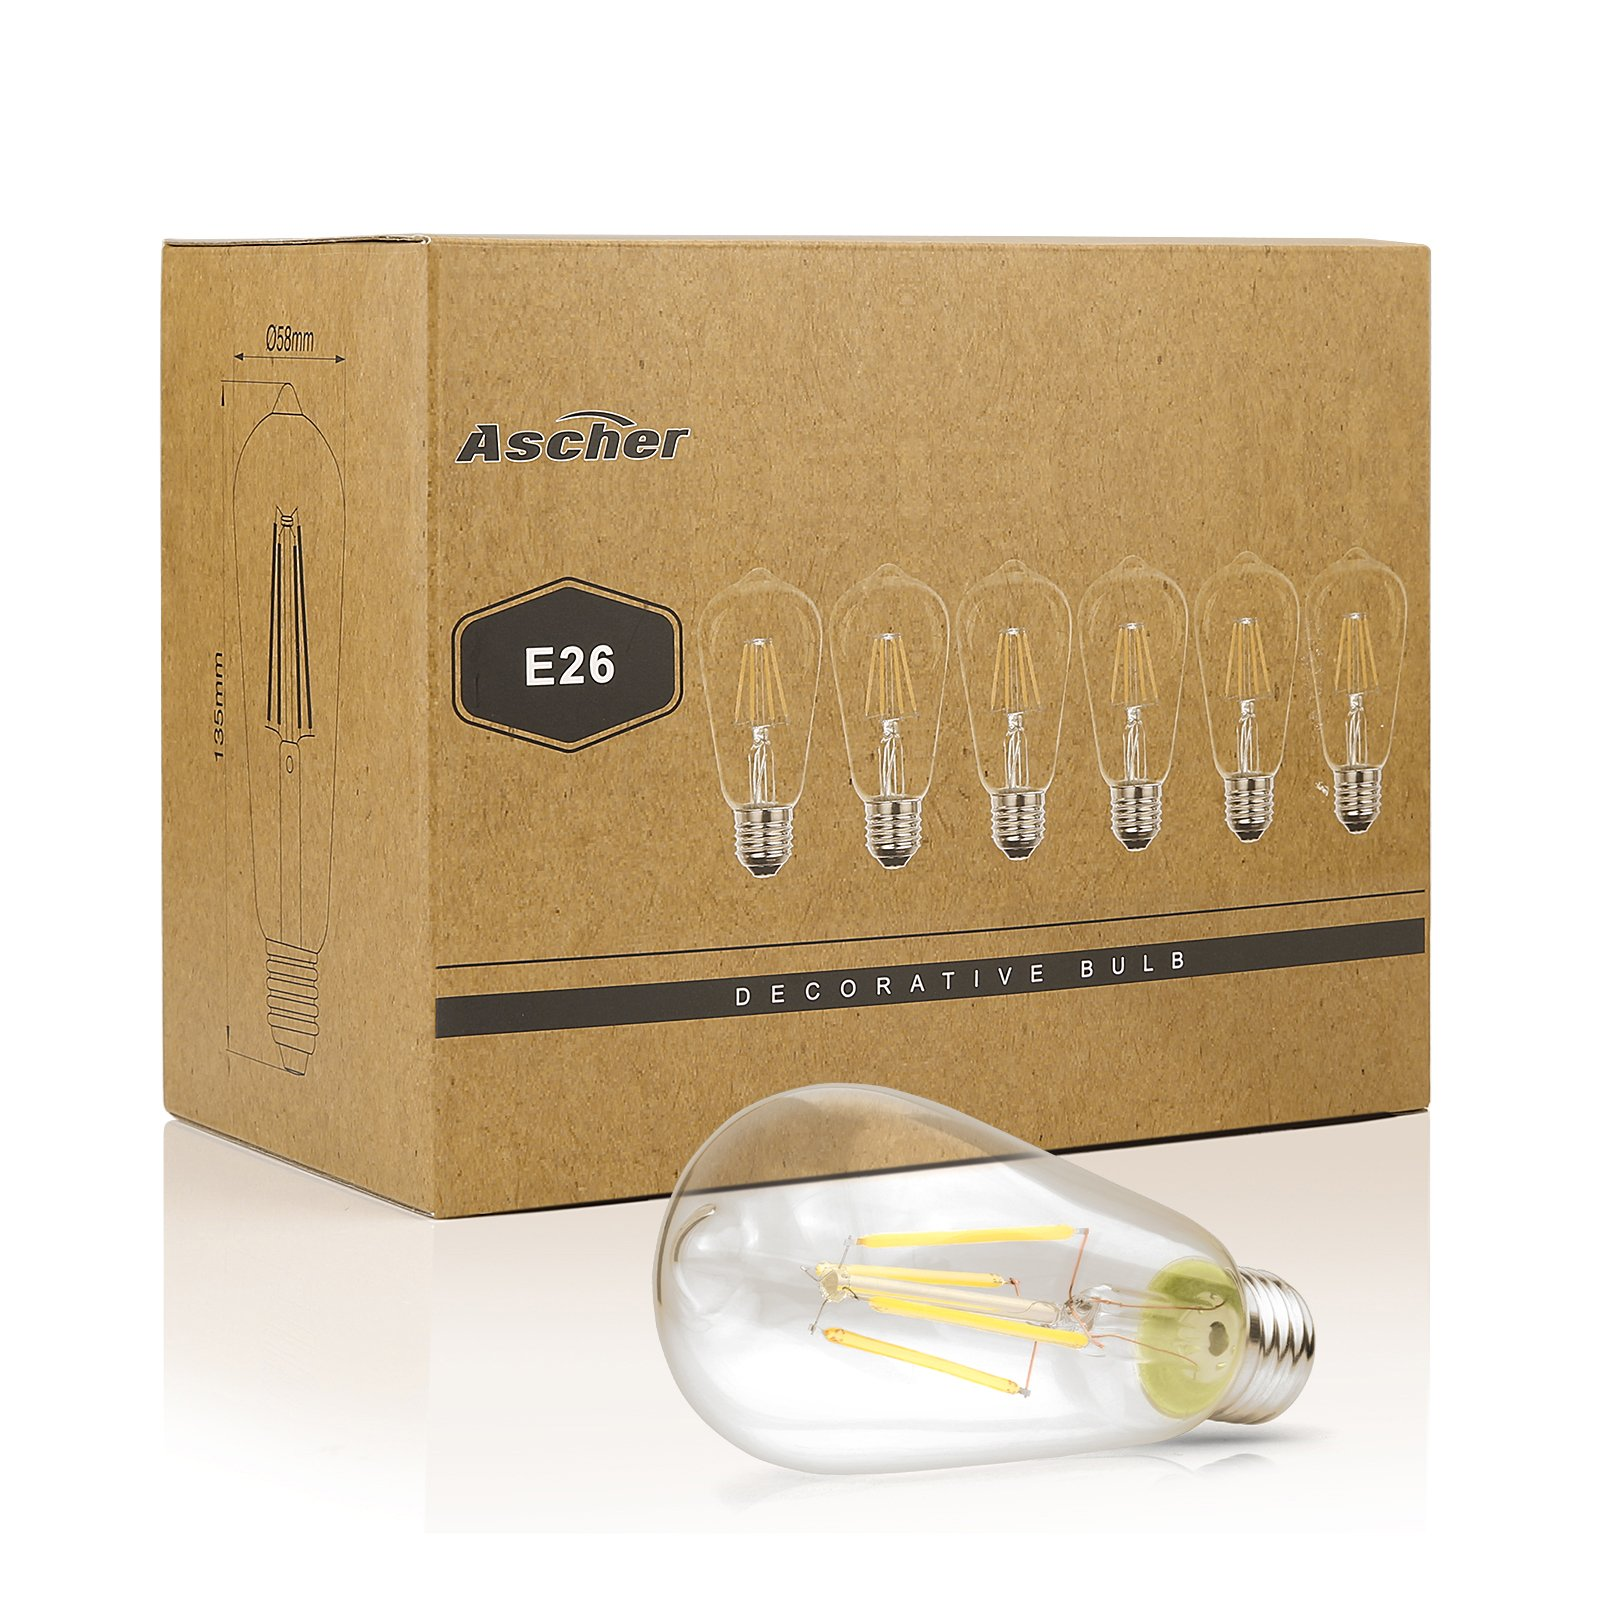 Ascher Vintage LED Edison Bulbs, 6W, Equivalent 60W, High Brightness Daylight White 4000K, ST58 Antique LED Filament Bulbs, E26 Medium Base, Non Dimmable, Clear Glass, Pack of 6 by Ascher (Image #9)